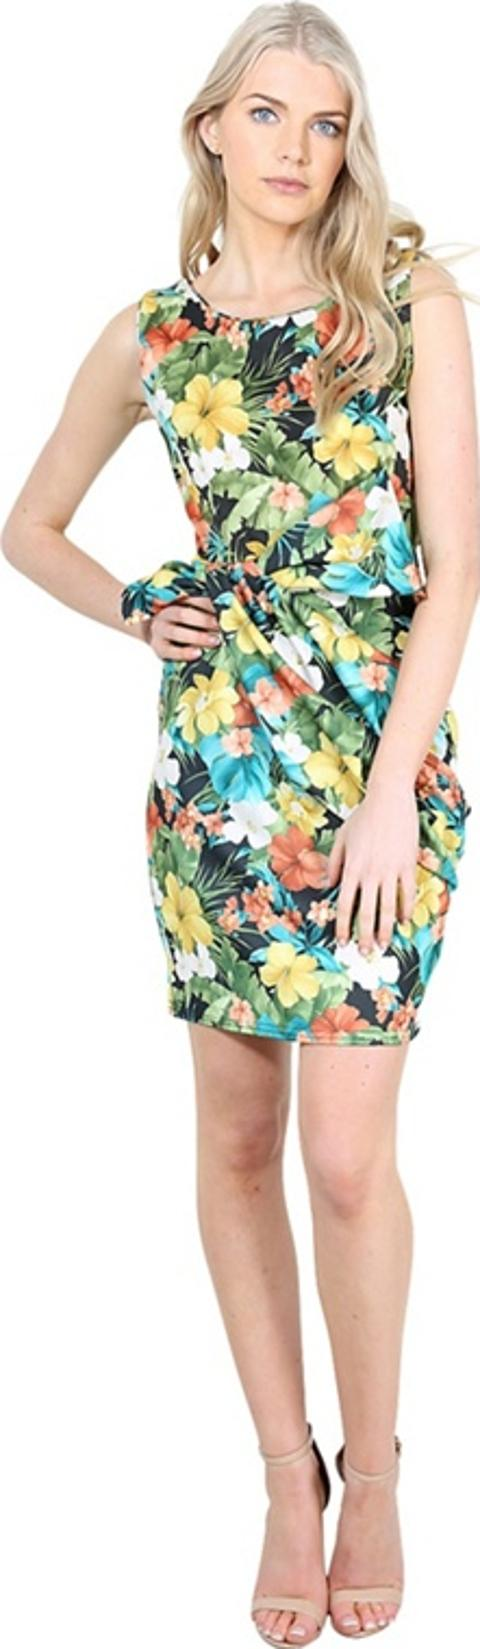 32ada155 Shop Floral Printed Bodycon Dress for Women - Obsessory